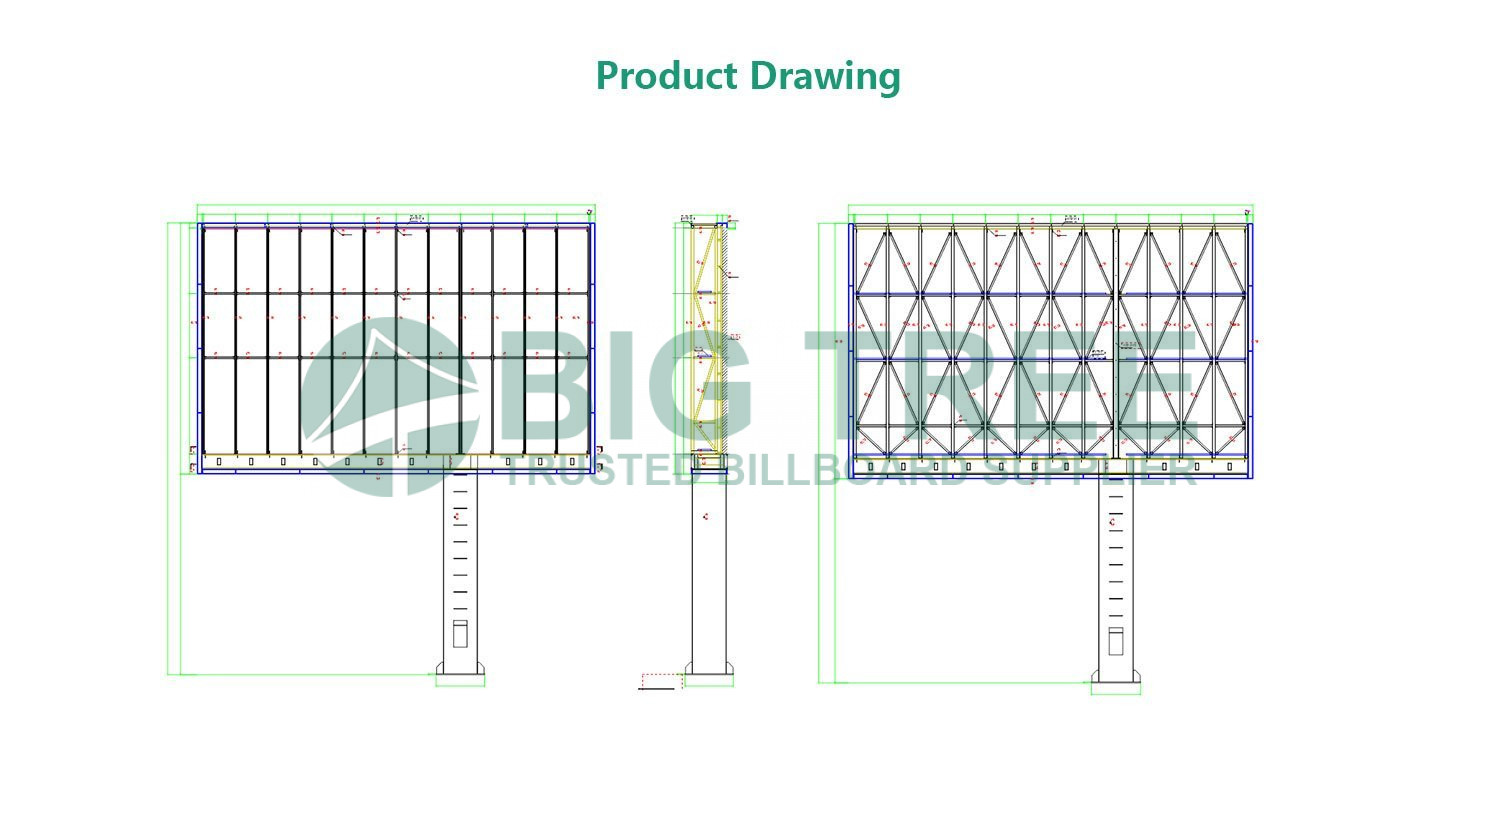 Outdoor-Digital-LED-Screen-Advertising-Unipole-Display drawing